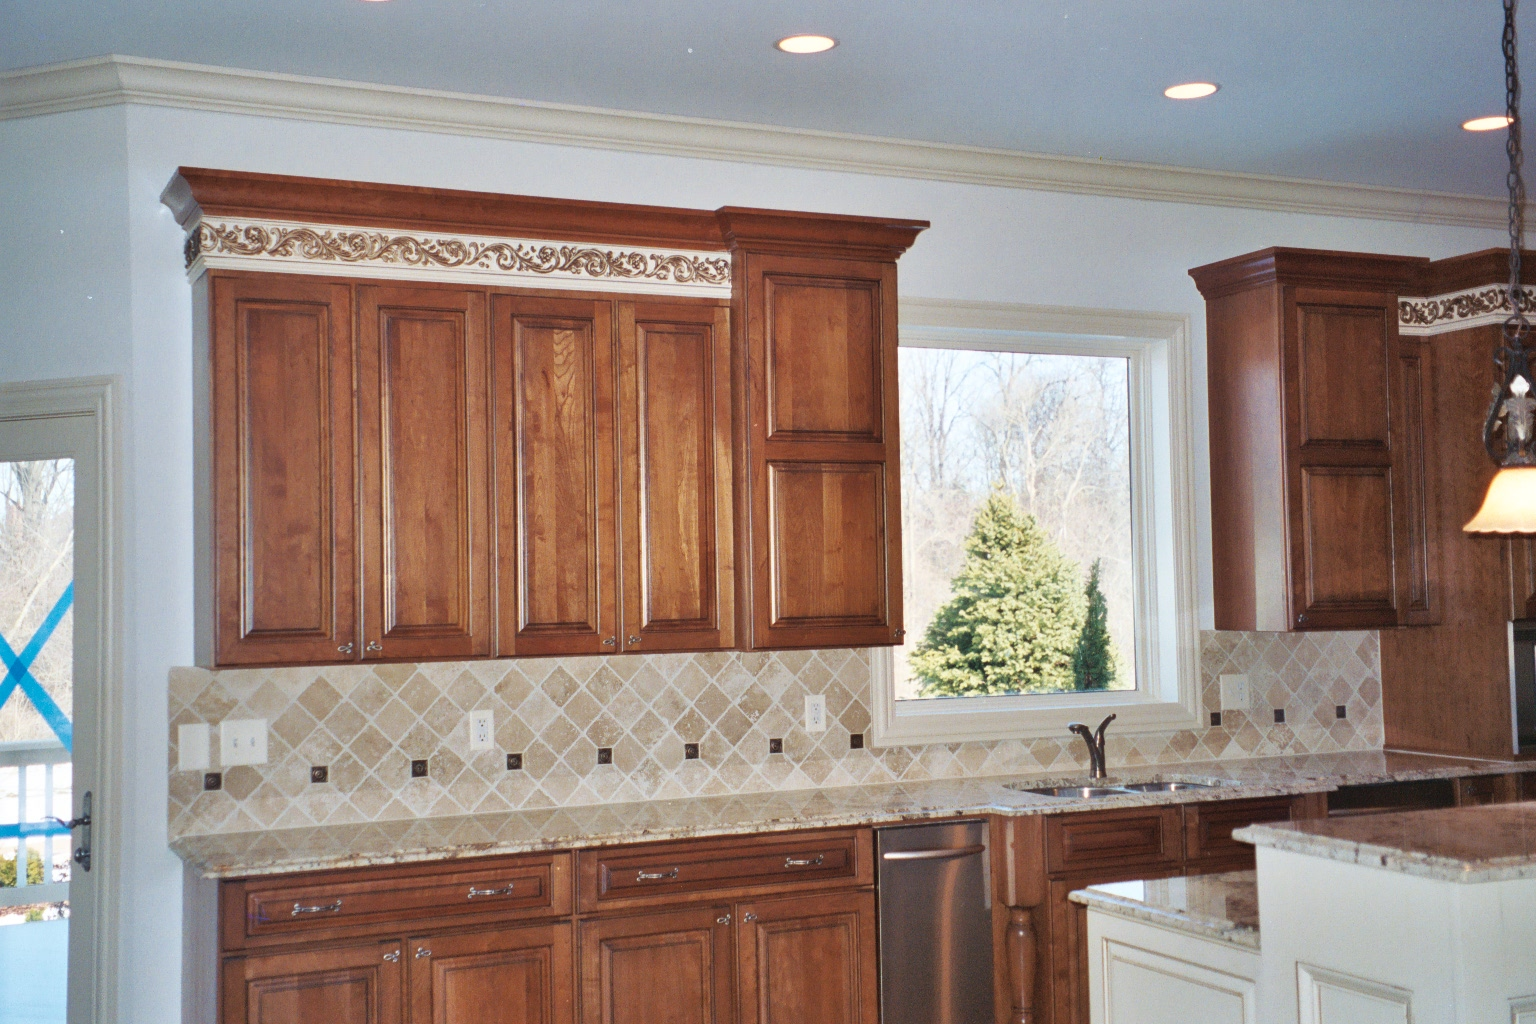 - Where To End Kitchen Backsplash Tiles - BELK Tile